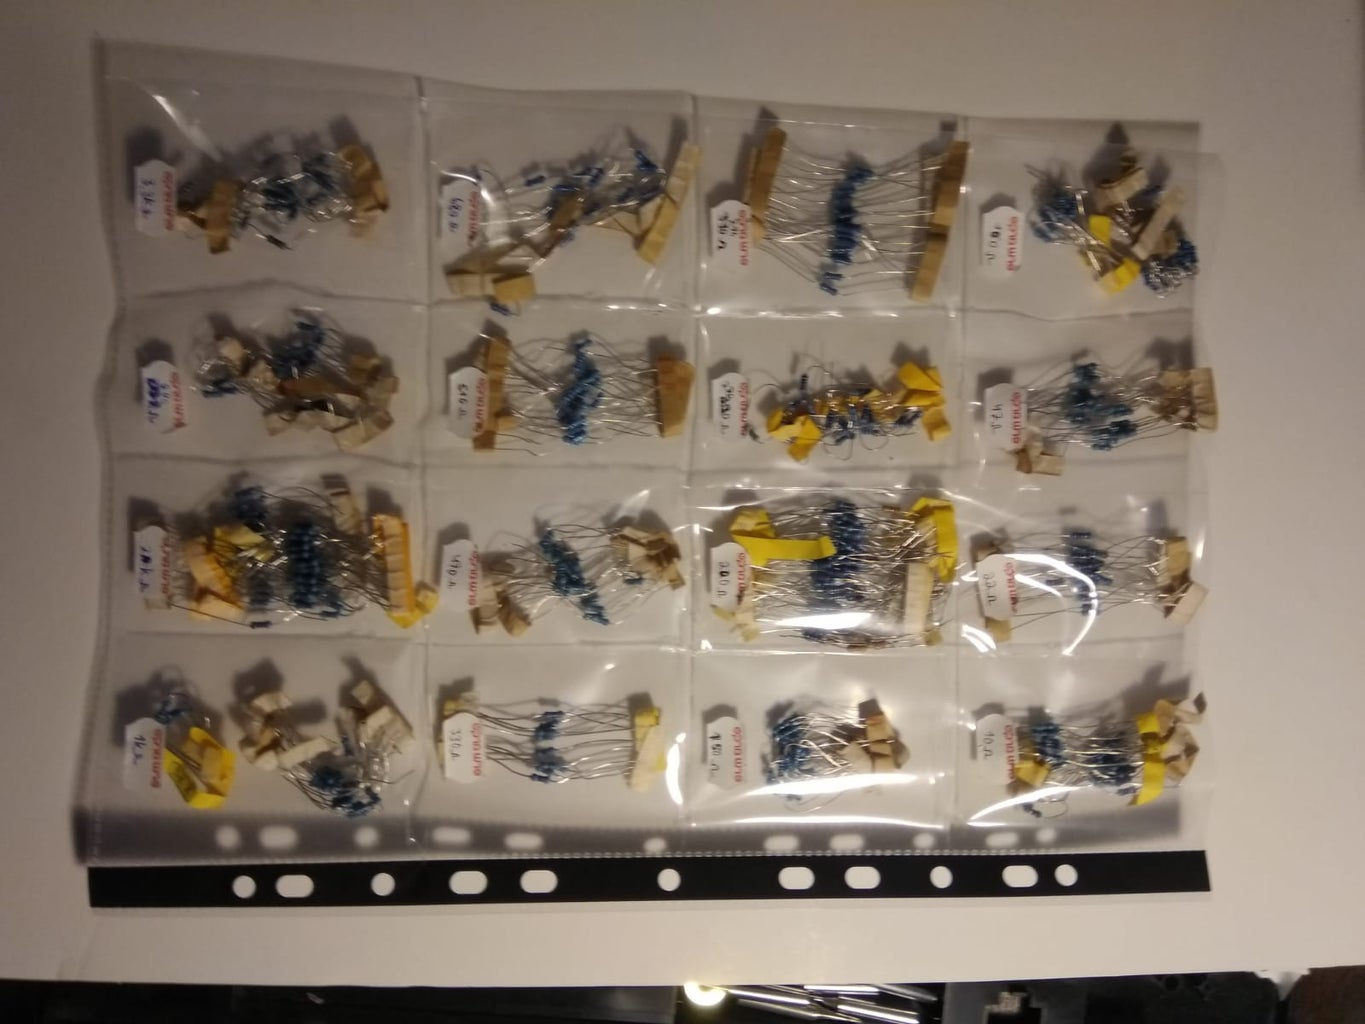 Custom Binder Sheet Organizer for Trading Cards or Small Parts